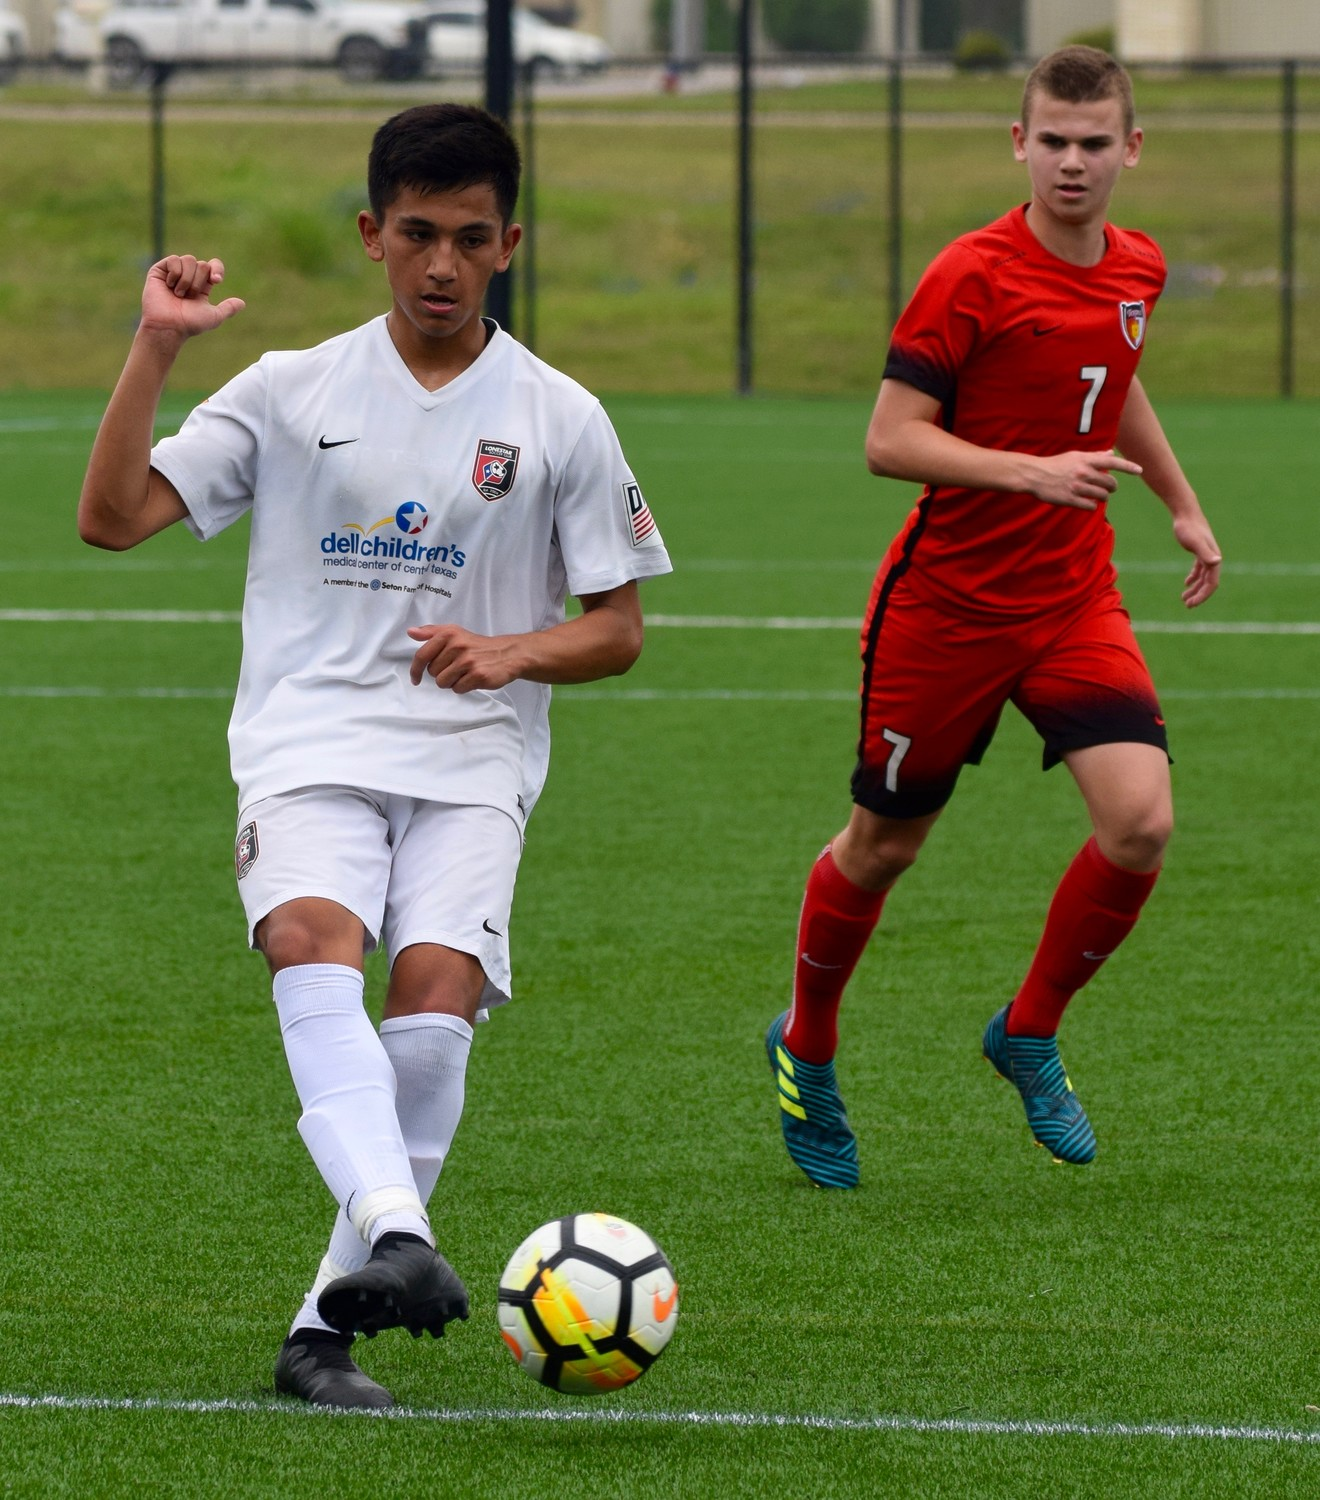 Lonestar SC and the U.S. Soccer High Performance Department are hosting the first ever bio-banded tournament this weekend at the Round Rock Multipurpose Complex.